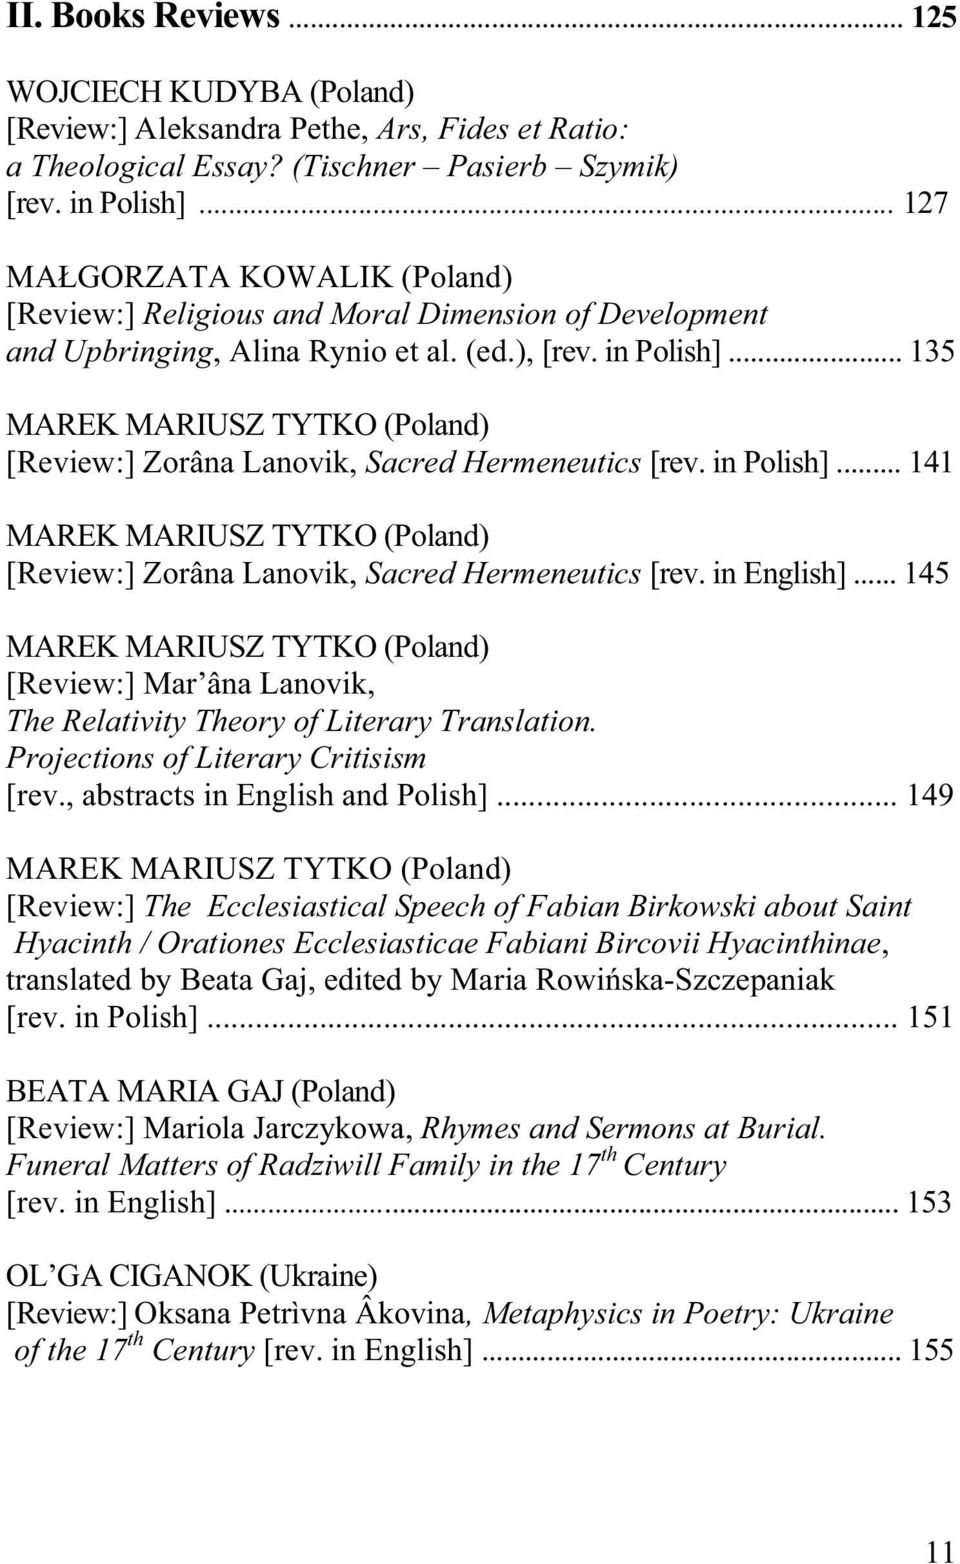 .. 135 MAREK MARIUSZ TYTKO (Poland) [Review:] Zorâna Lanovik, Sacred Hermeneutics [rev. in Polish]... 141 MAREK MARIUSZ TYTKO (Poland) [Review:] Zorâna Lanovik, Sacred Hermeneutics [rev. in English].